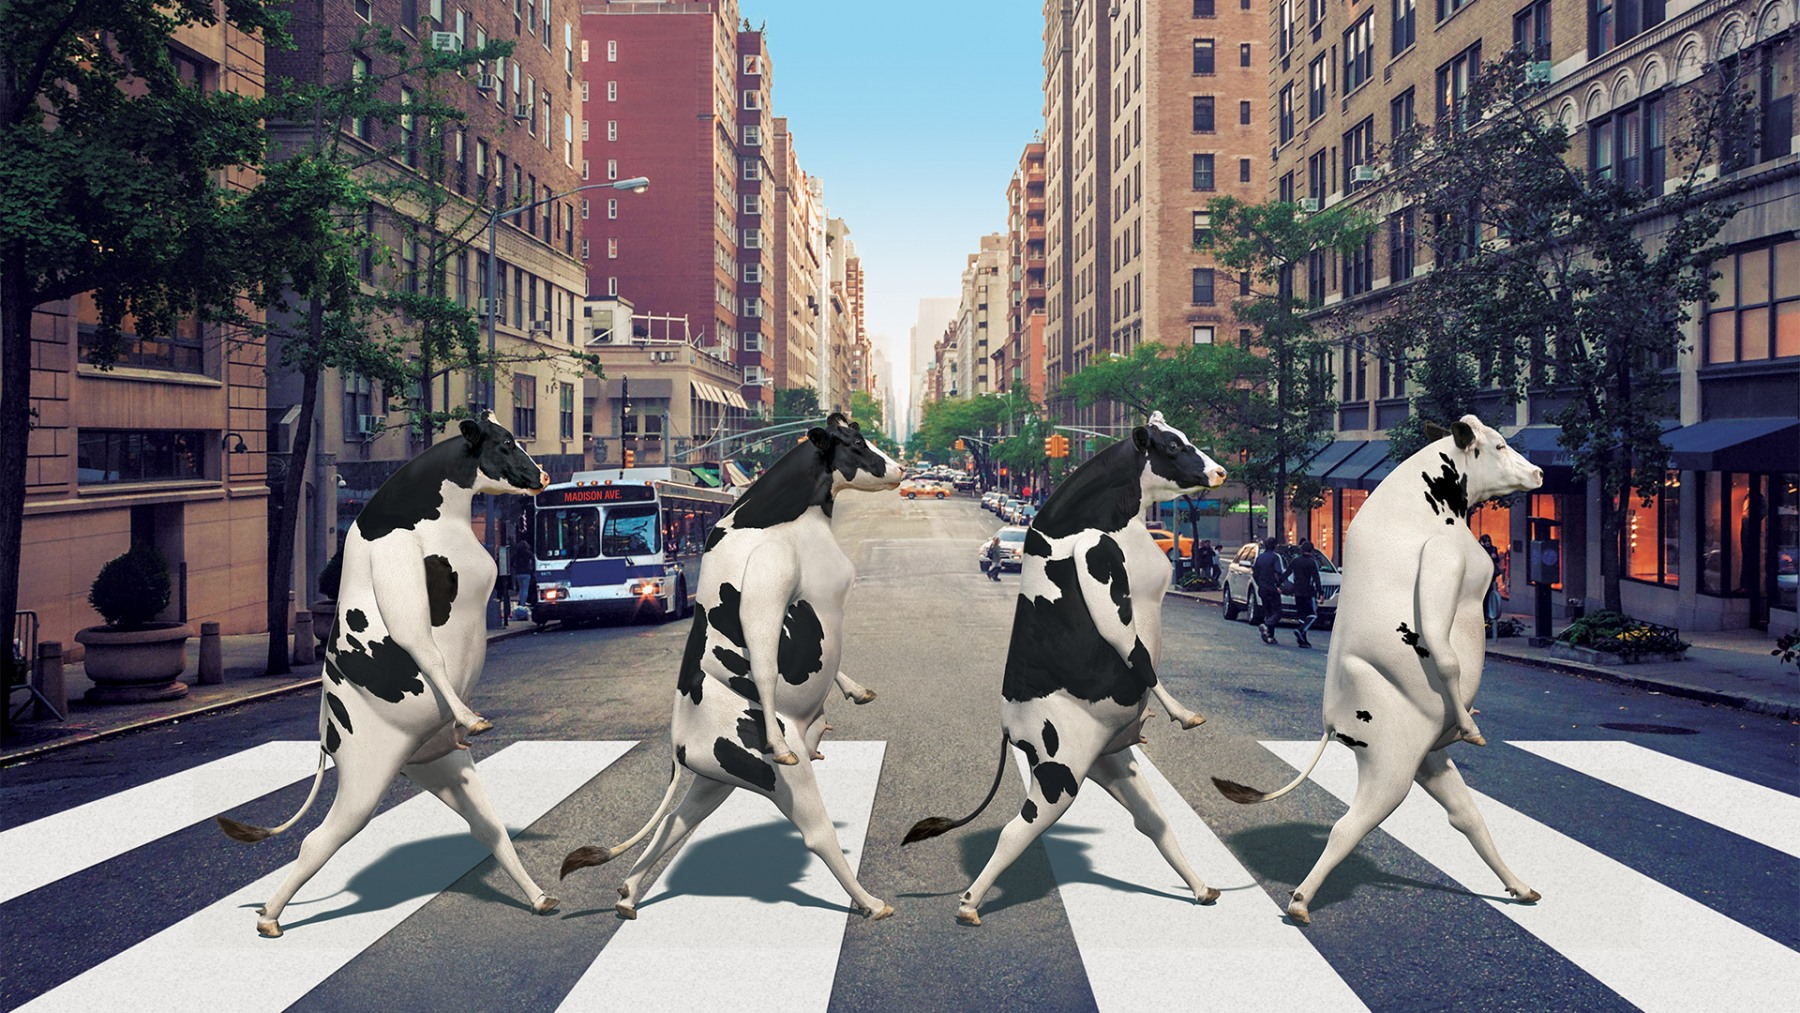 MADISON AVE. COWS